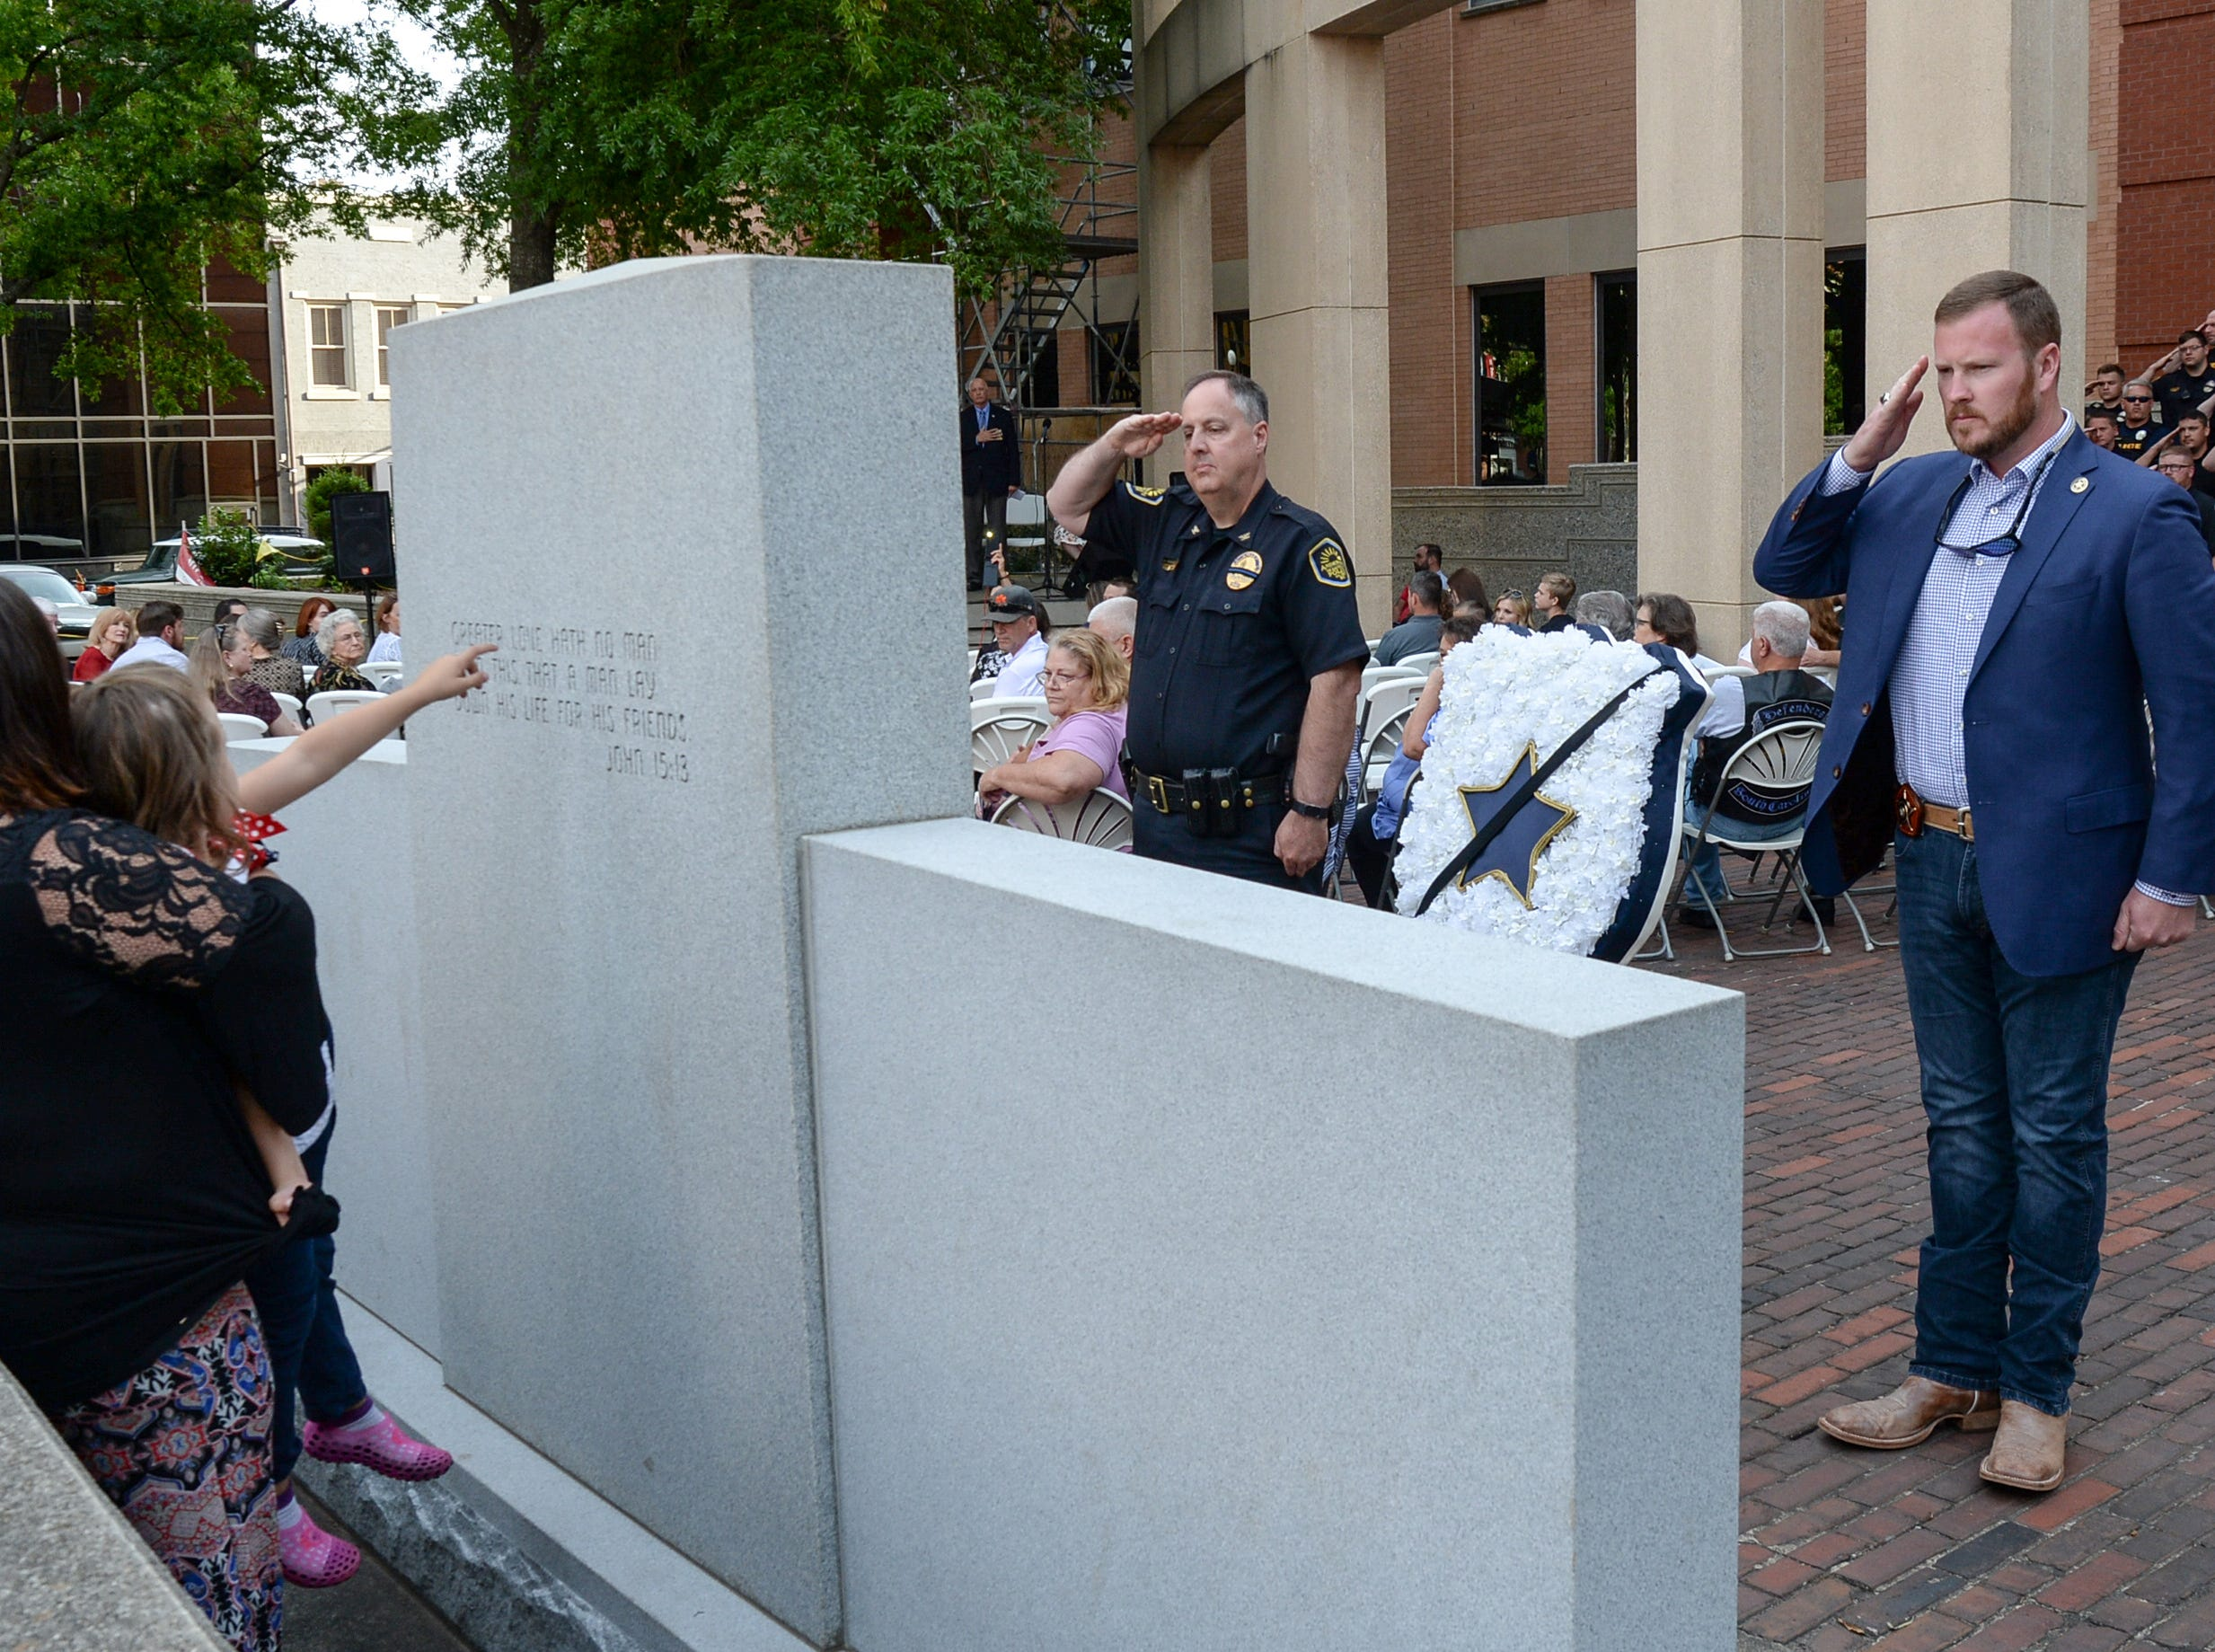 Anderson Chief Jim Stewart, left, and Sheriff Chad McBride salute at the courthouse memorial after carrying the wreath during the 2019 Peace Officer Memorial Service Wednesday May 15, 2019. People attended to help honor the lives of officers lost in the line of duty.